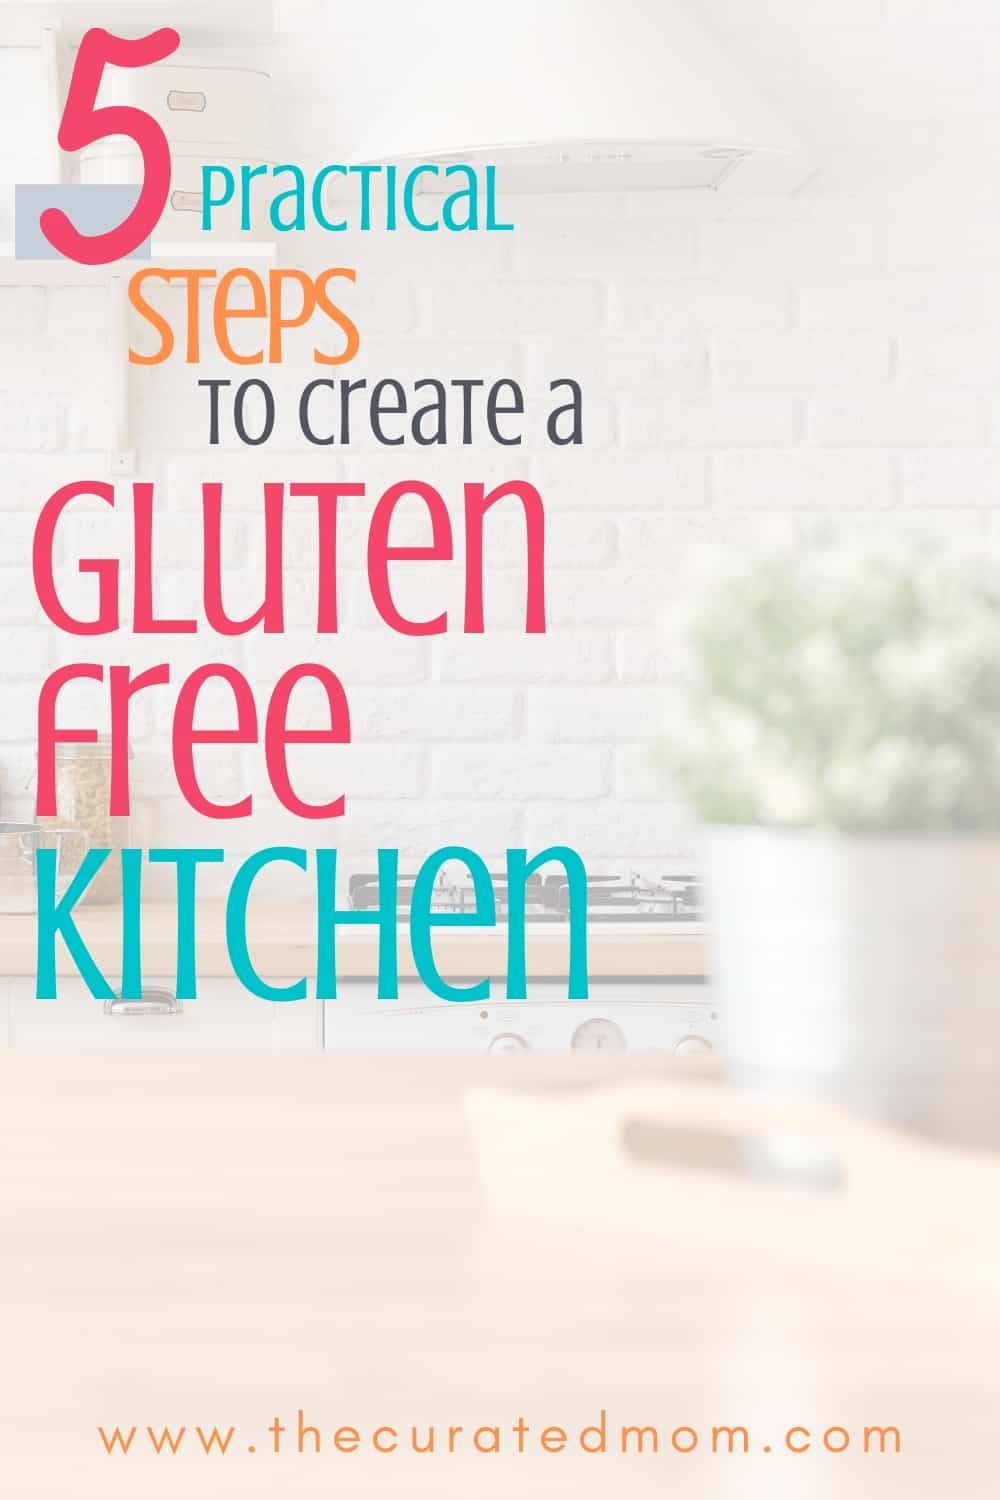 Kitchen with text reading 5 Practical Steps to Create a Gluten Free Kitchen Today